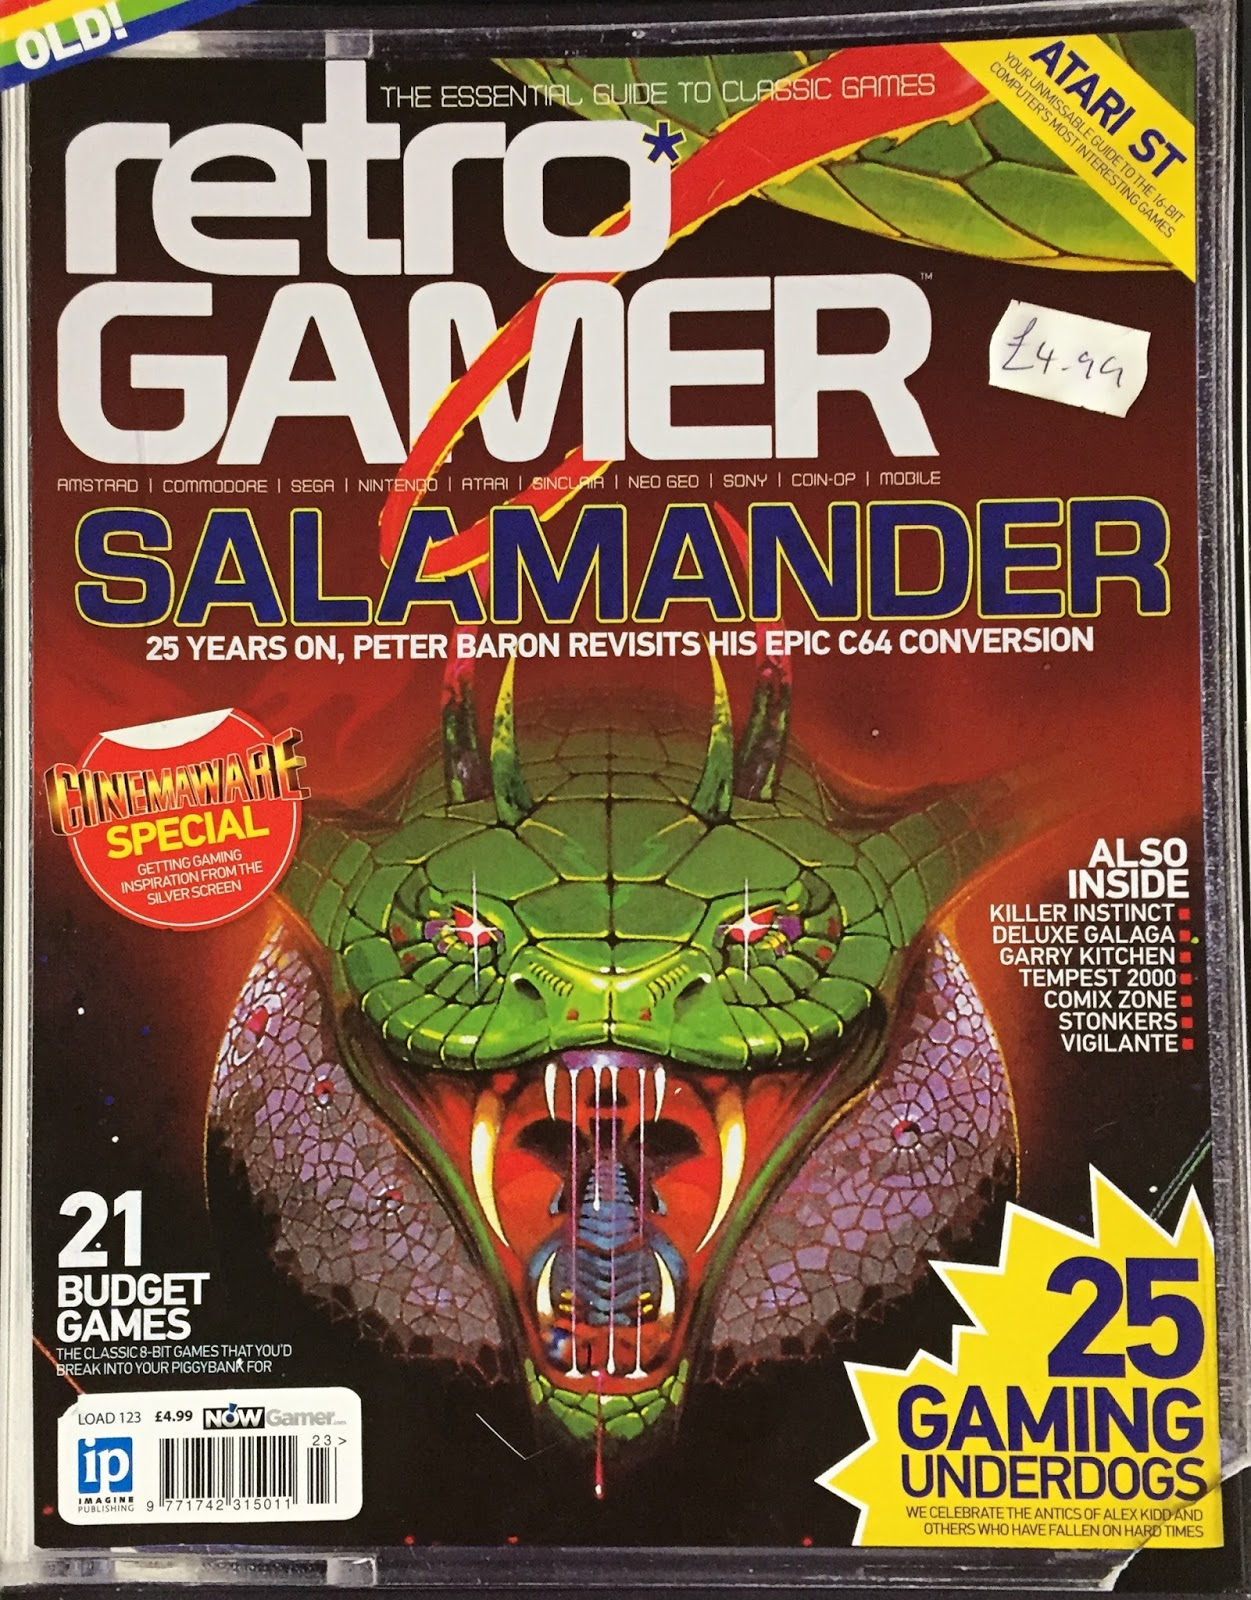 Retro Gamer Randomness: Review: Retro Gamer Magazine